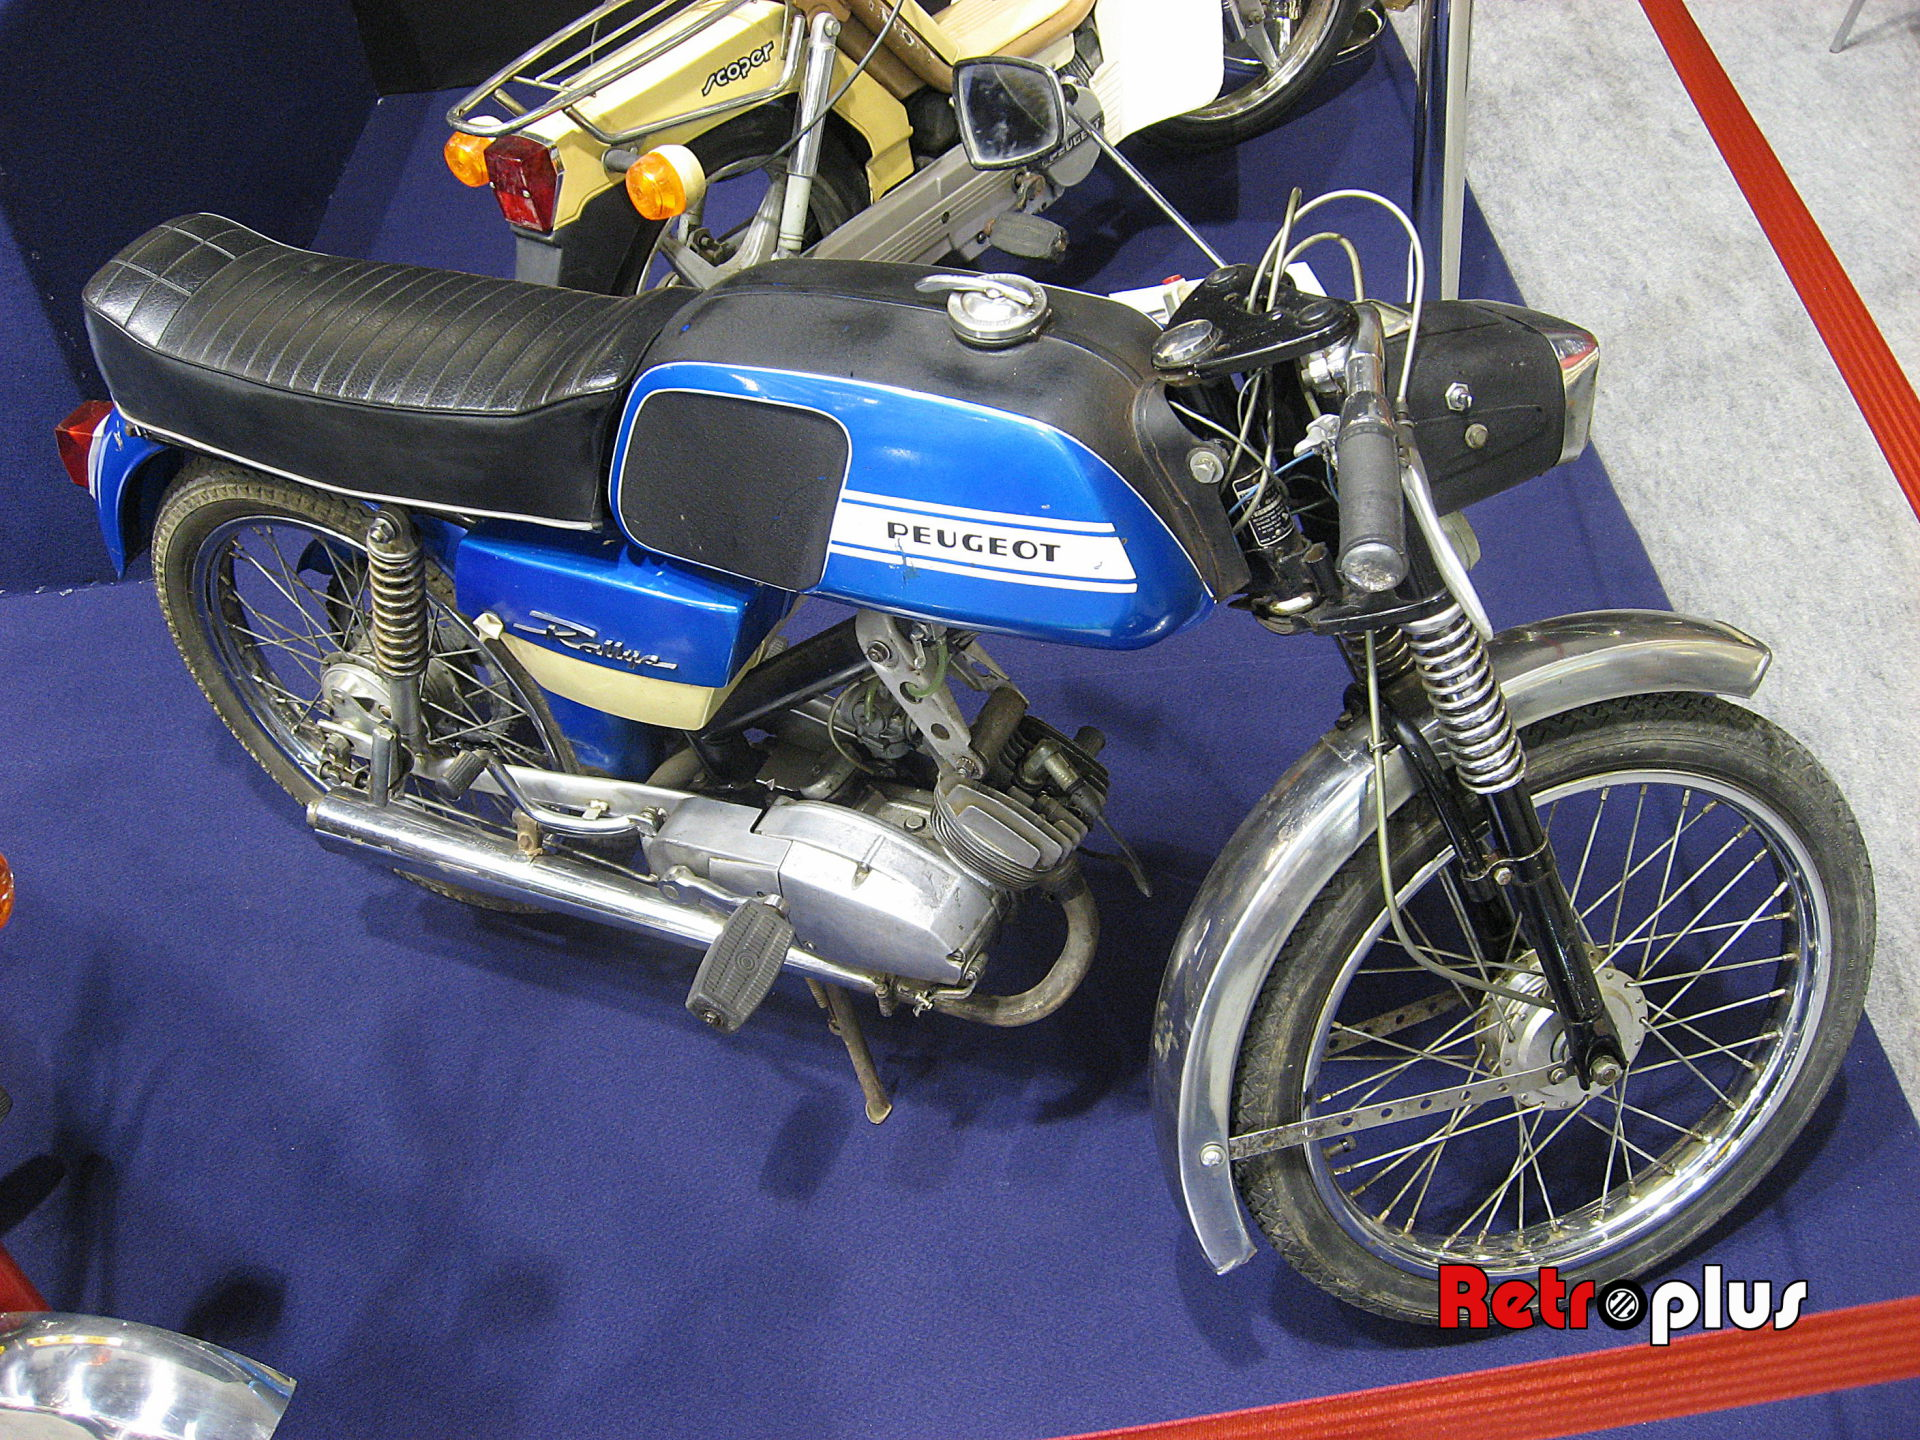 Retromobile2010-Motos-016